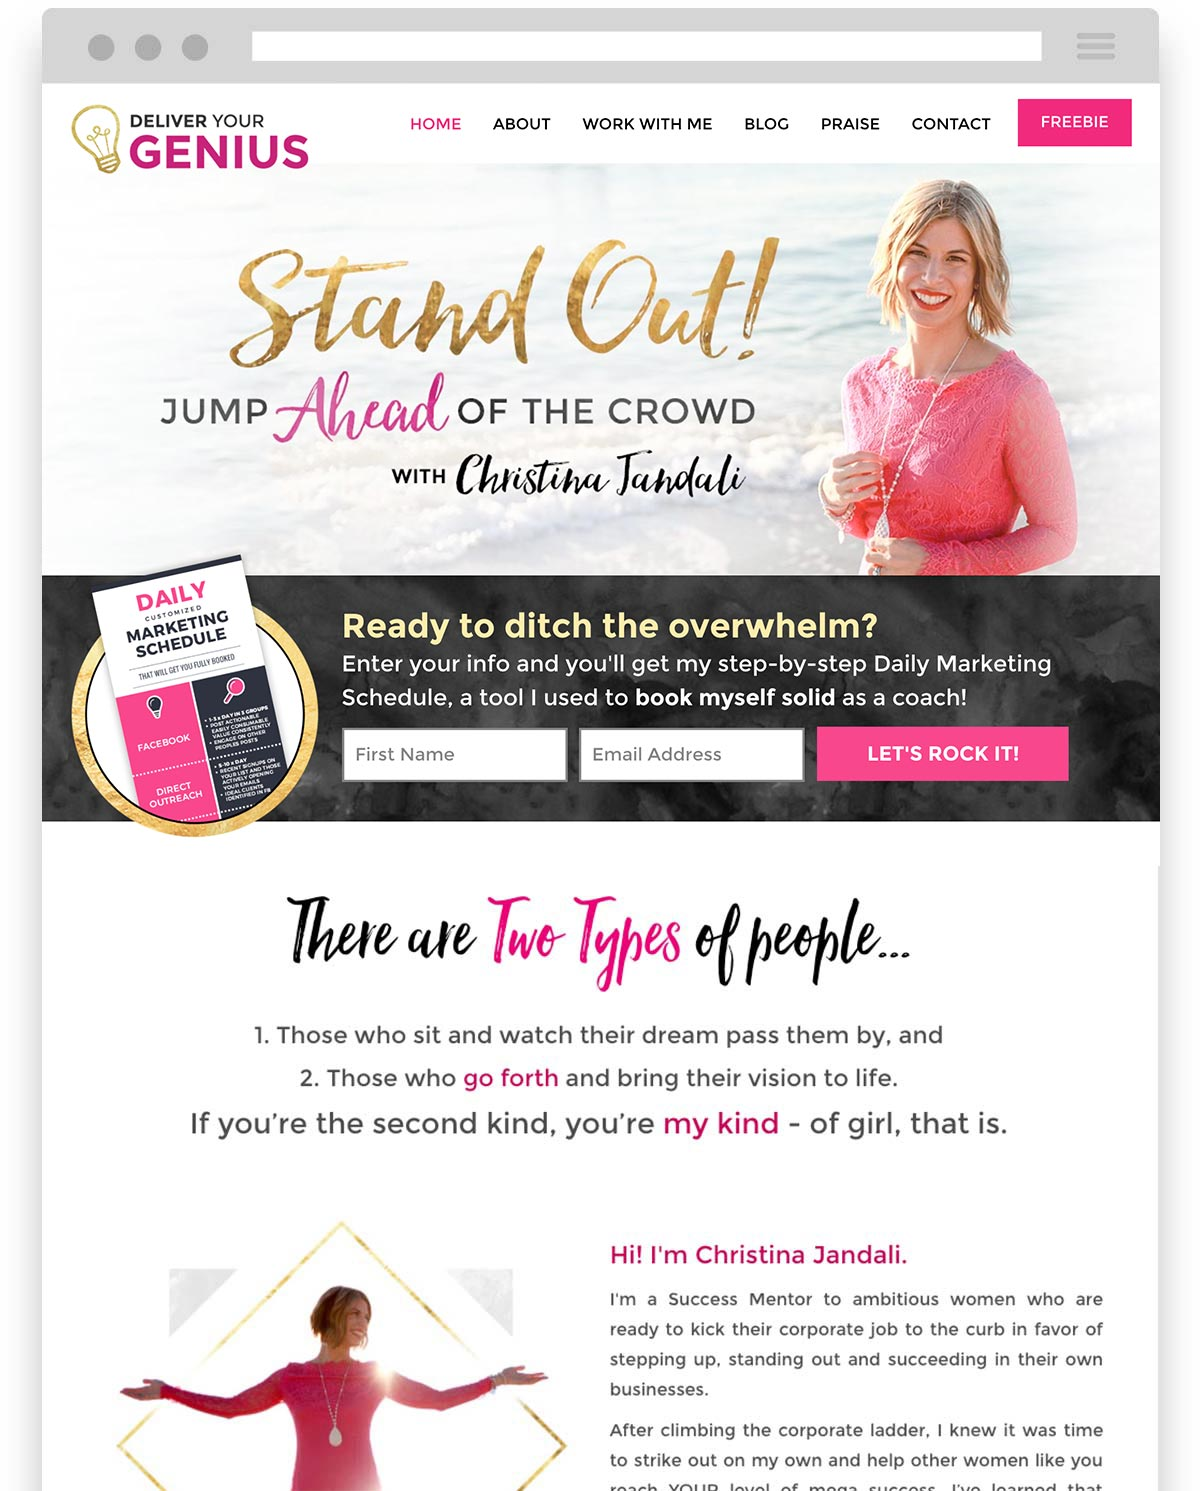 Christina Jandali Deliver your Genius website